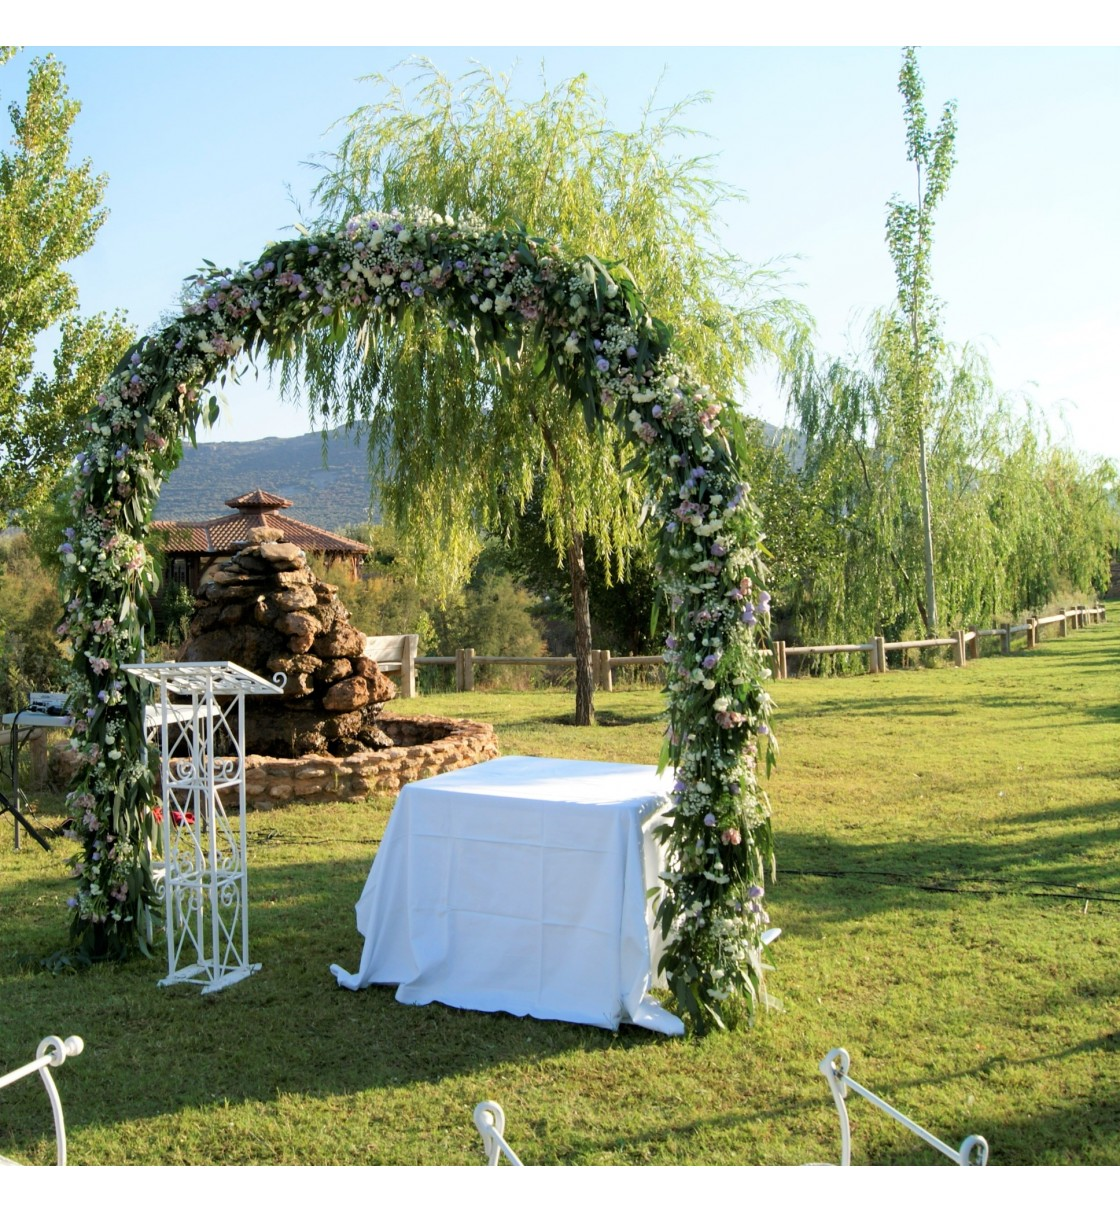 Decoraci n de boda civil en fuente taray con arco floral y - Adornos boda civil ...